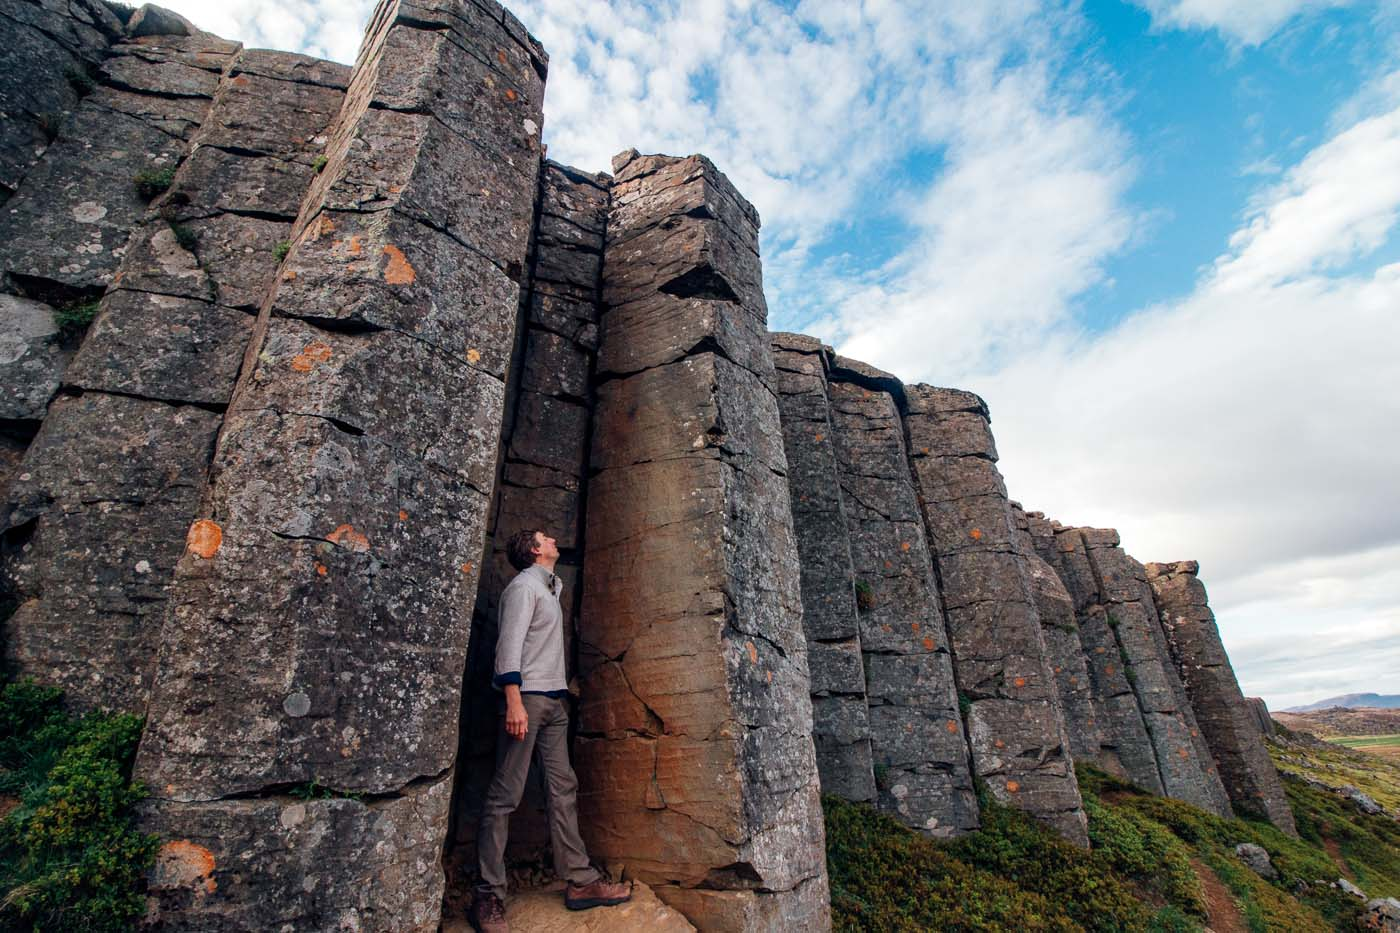 Man standing among the basalt columns of the Gerduberg Cliffs on Iceland's Snaefellsnes Peninsula